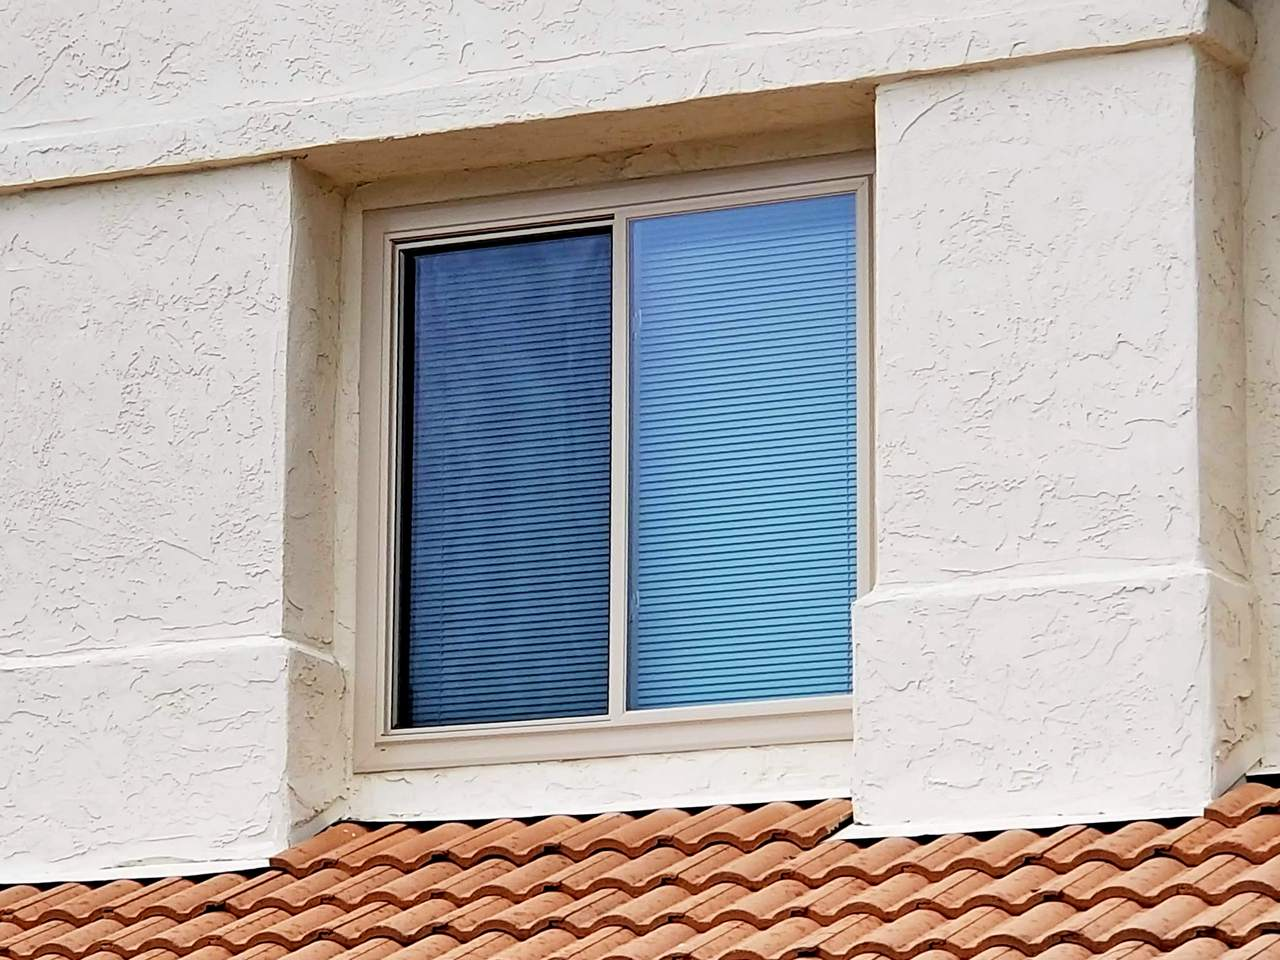 Rancho Bernardo Windows After